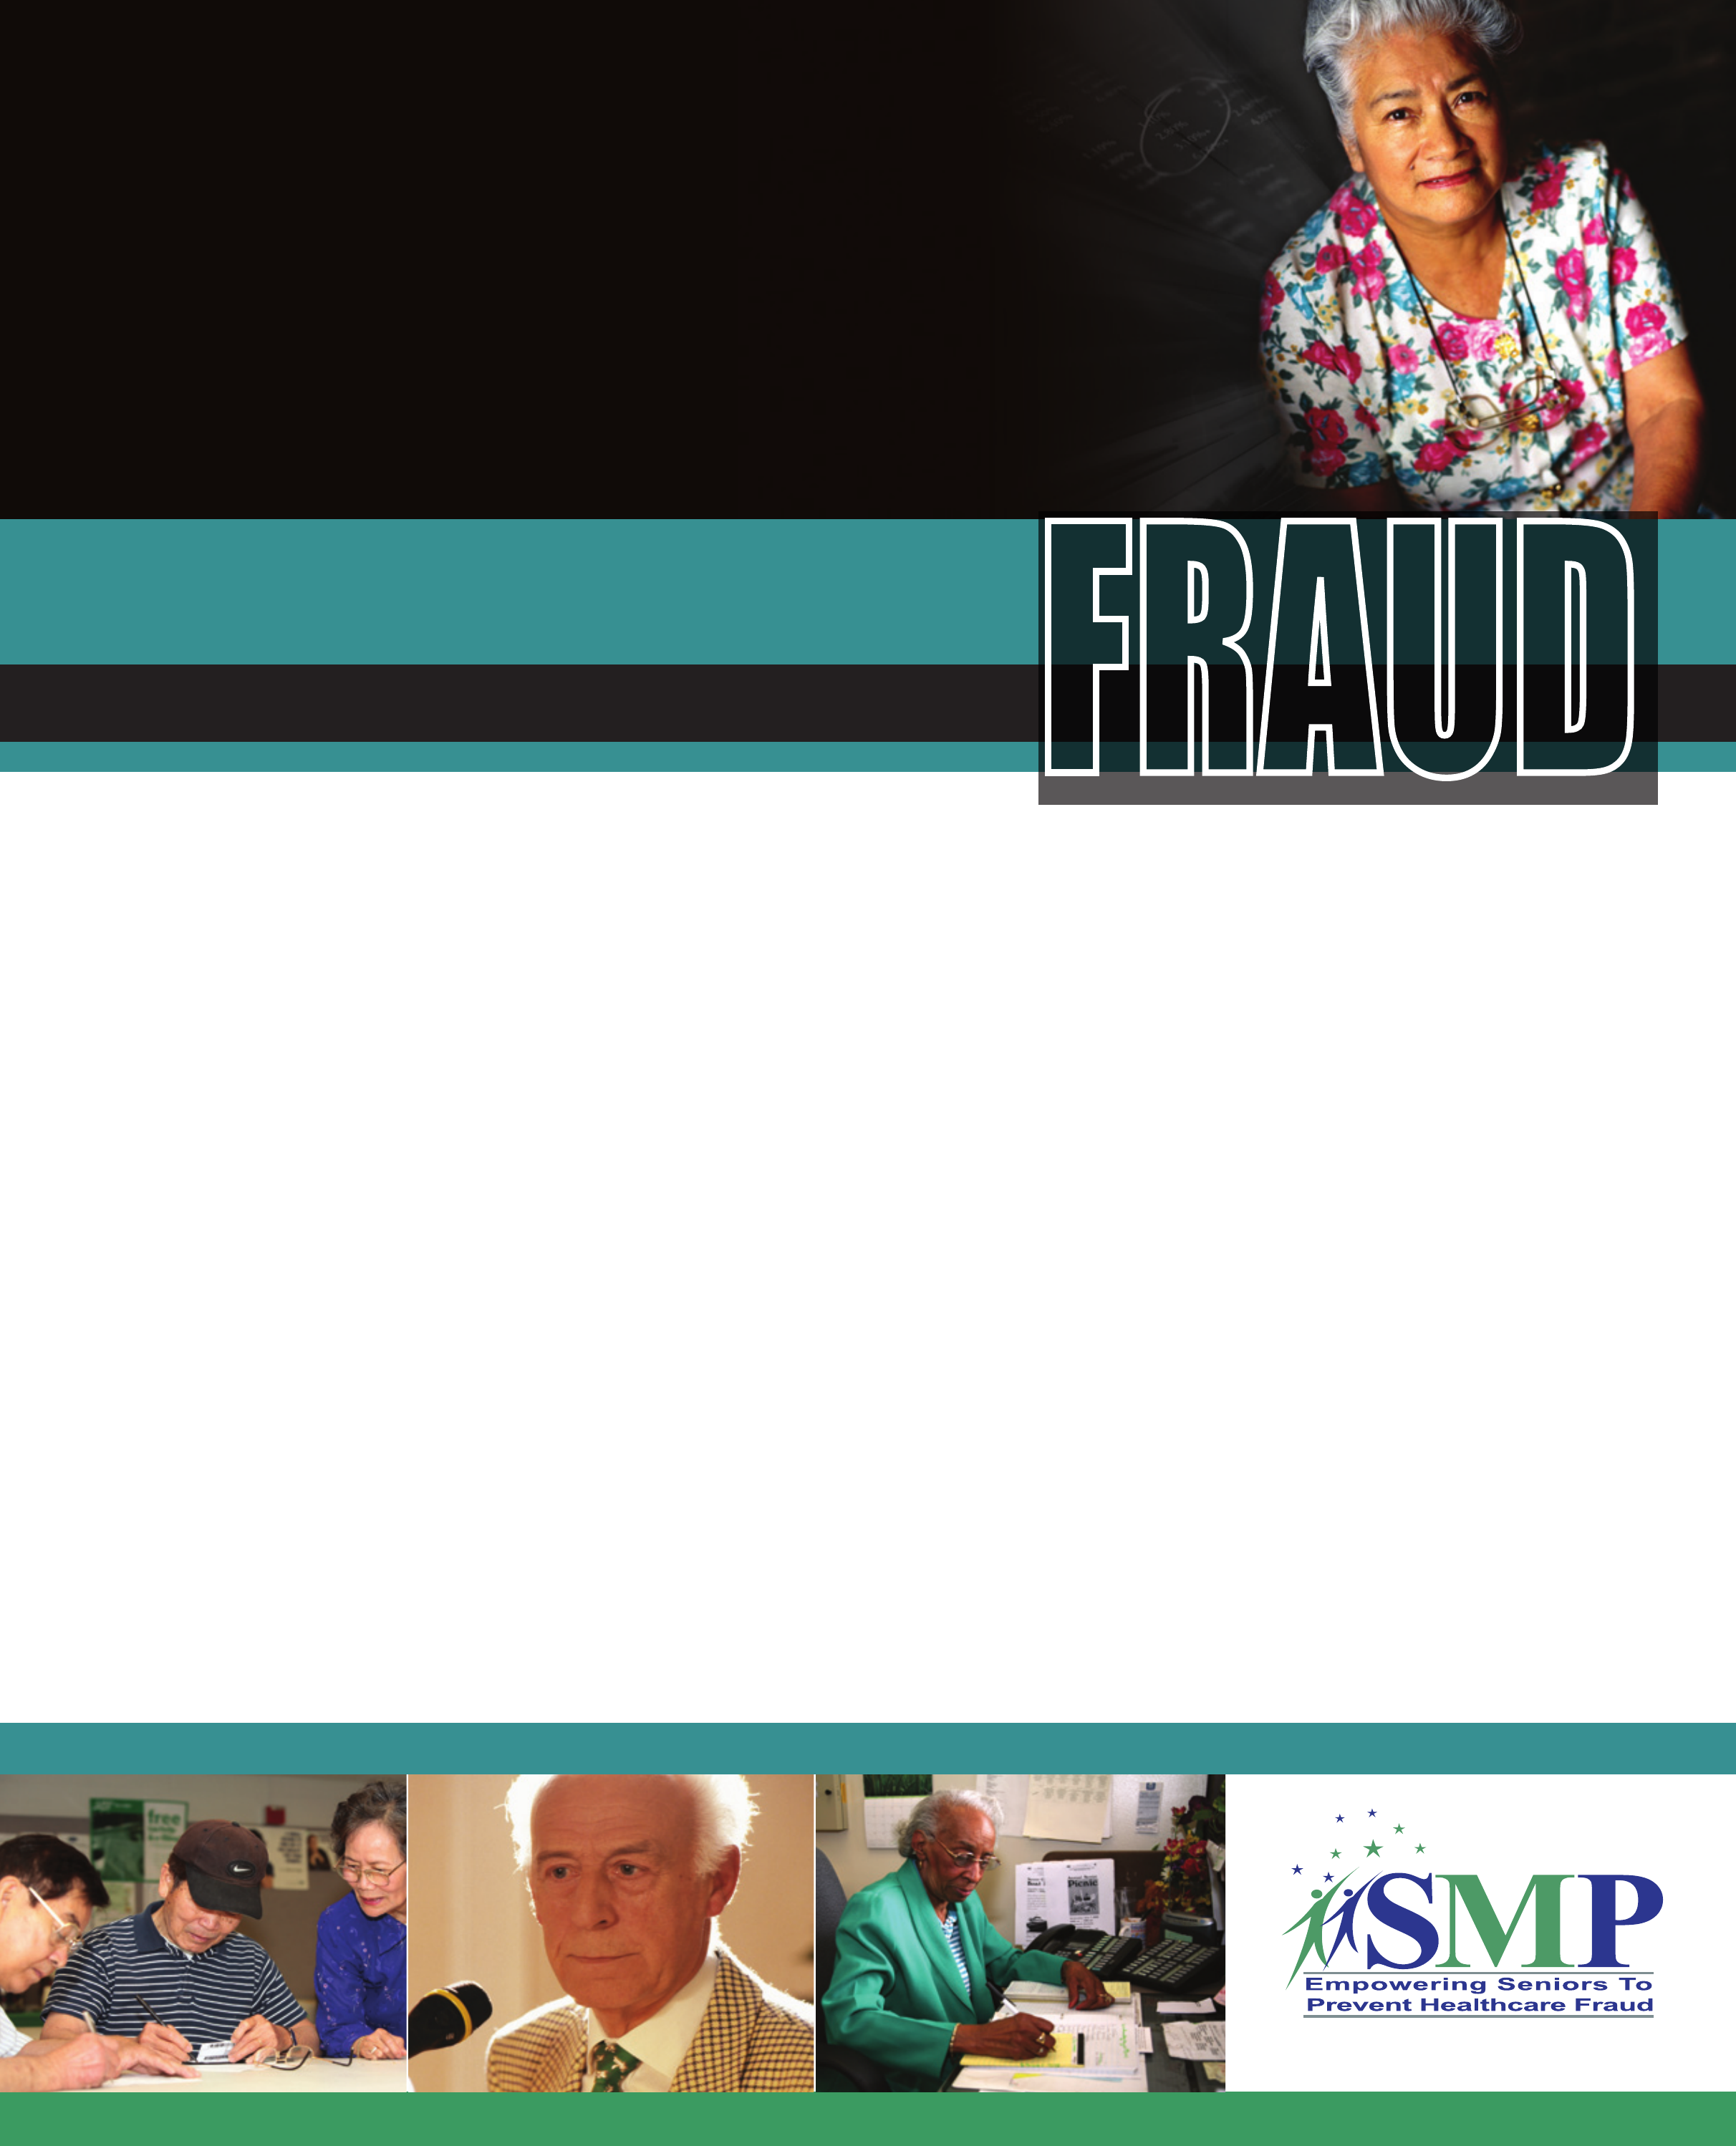 stop health care fraud event flyer template free download